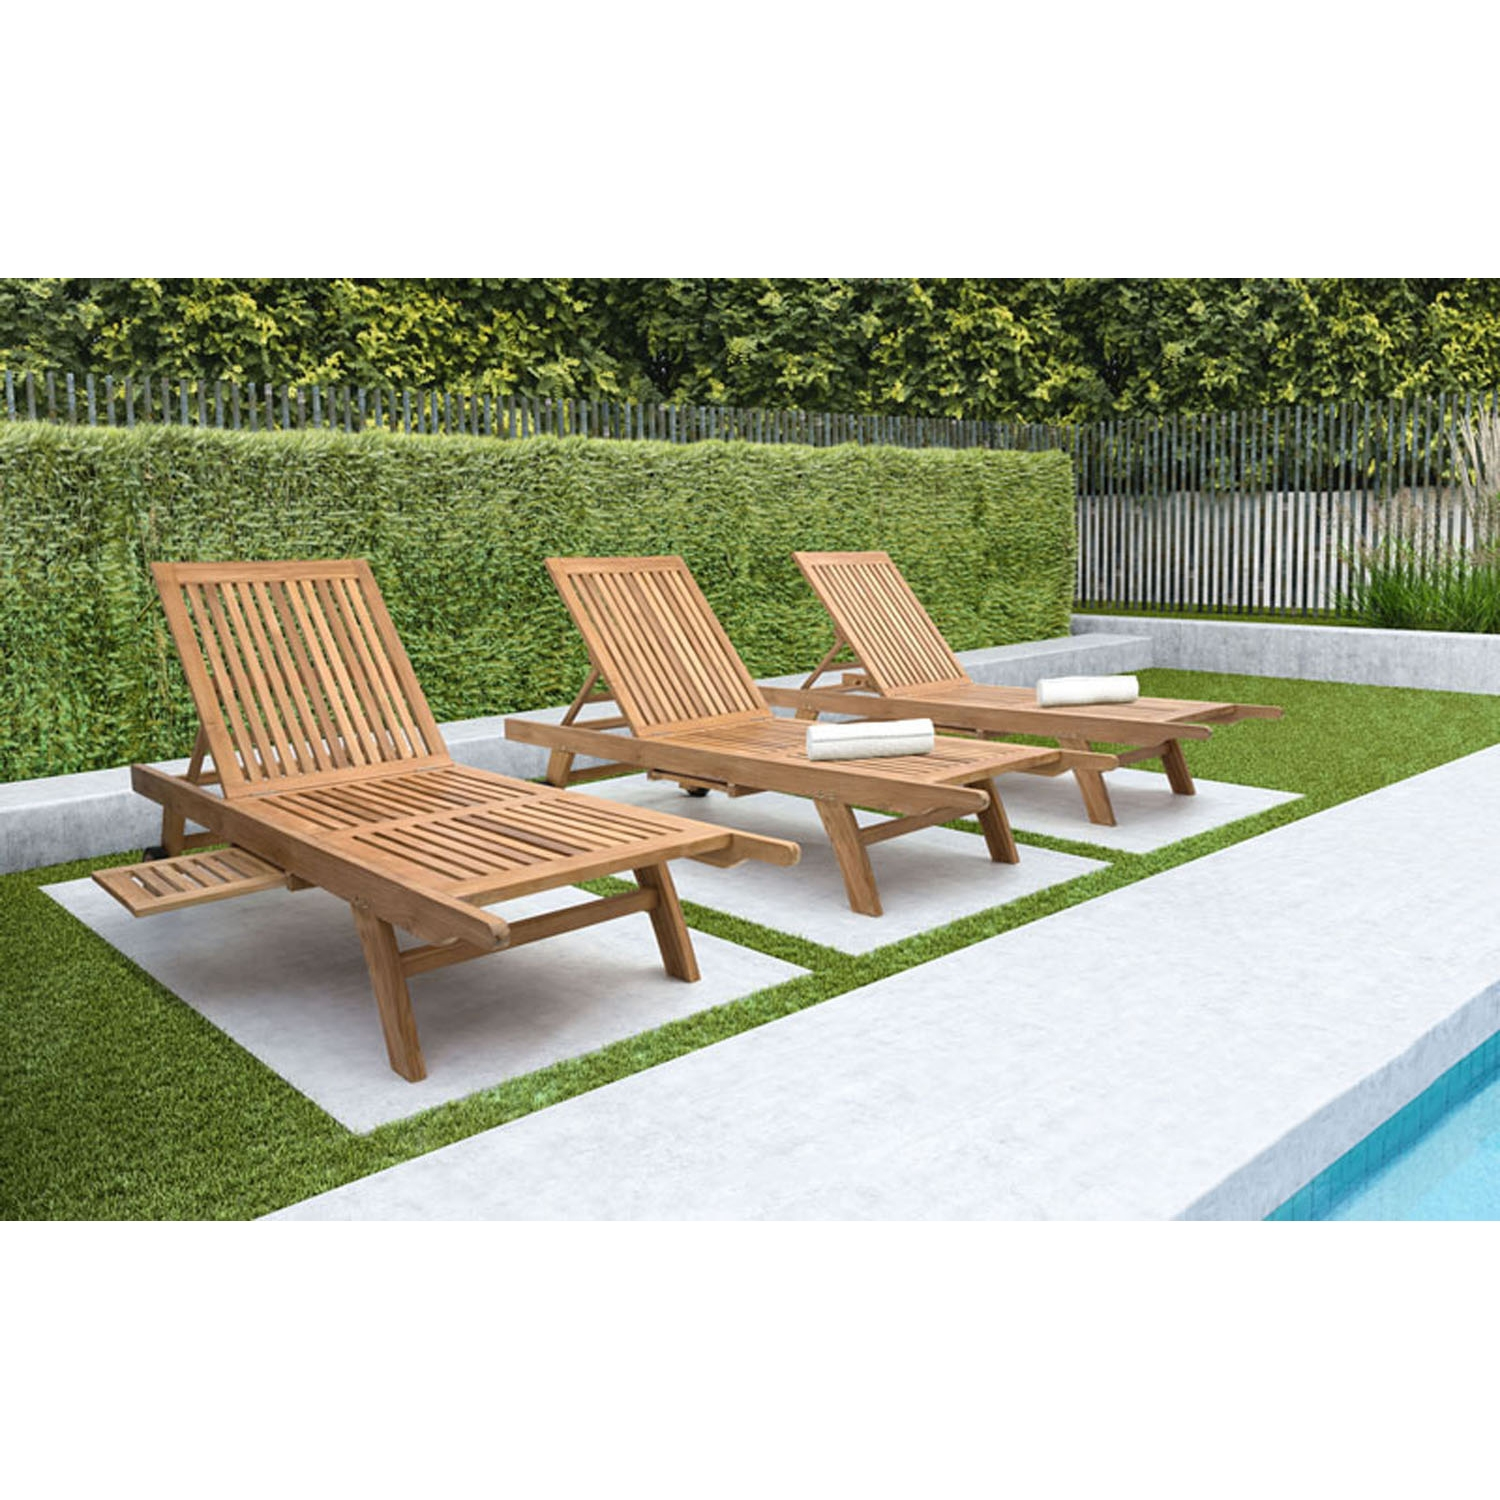 Starboard Chaise Lounge - Natural - ZM-703560